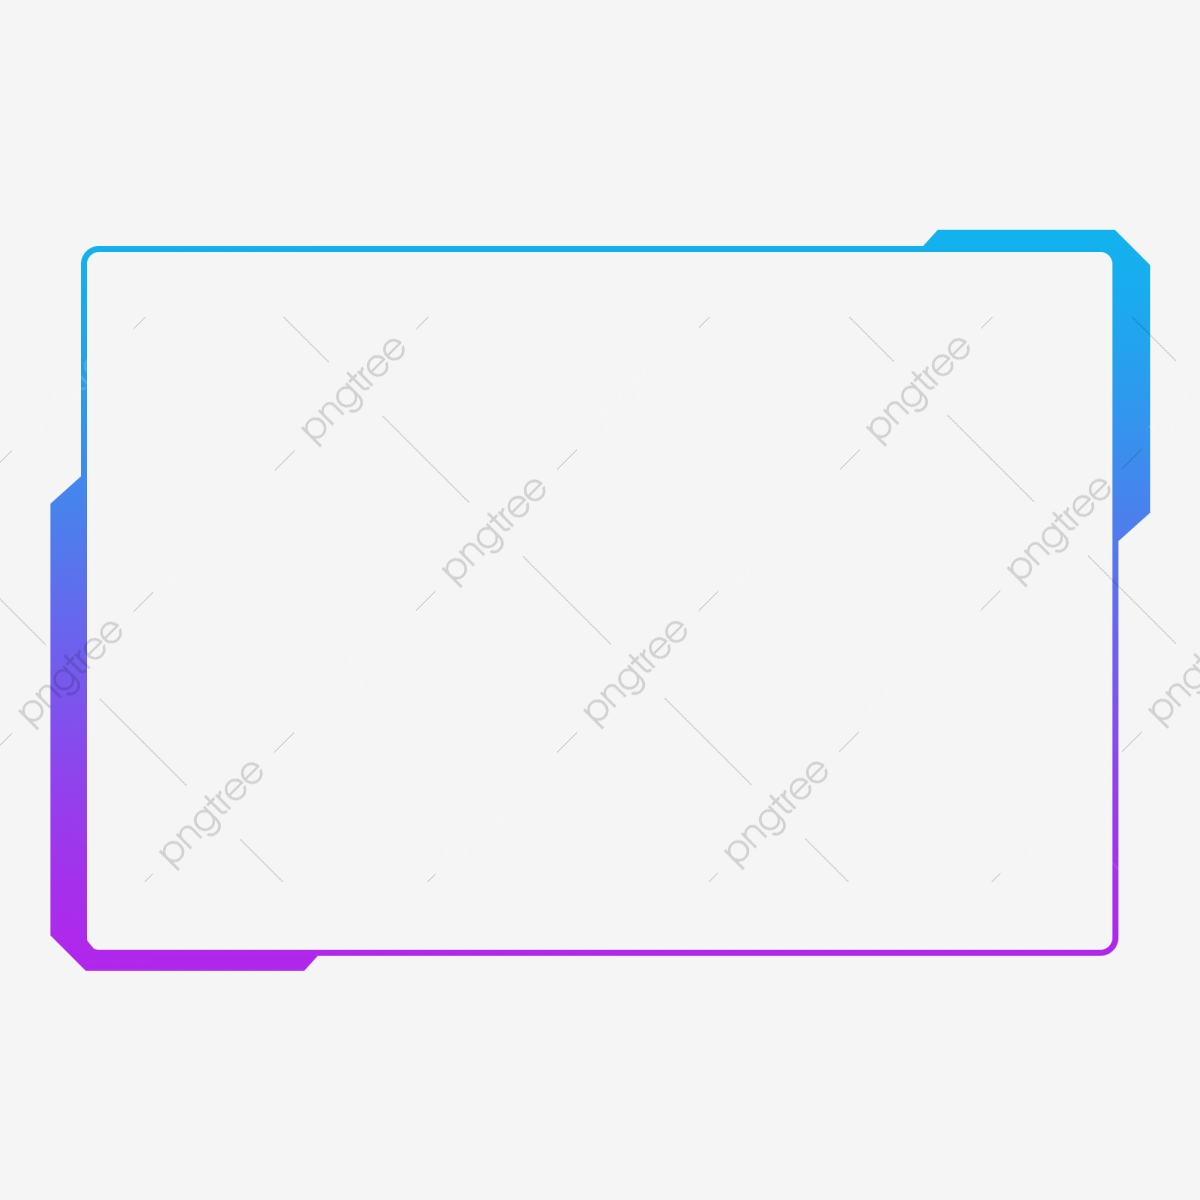 Png Free Buckle Blue Gradient Modern Geometric Square Border.